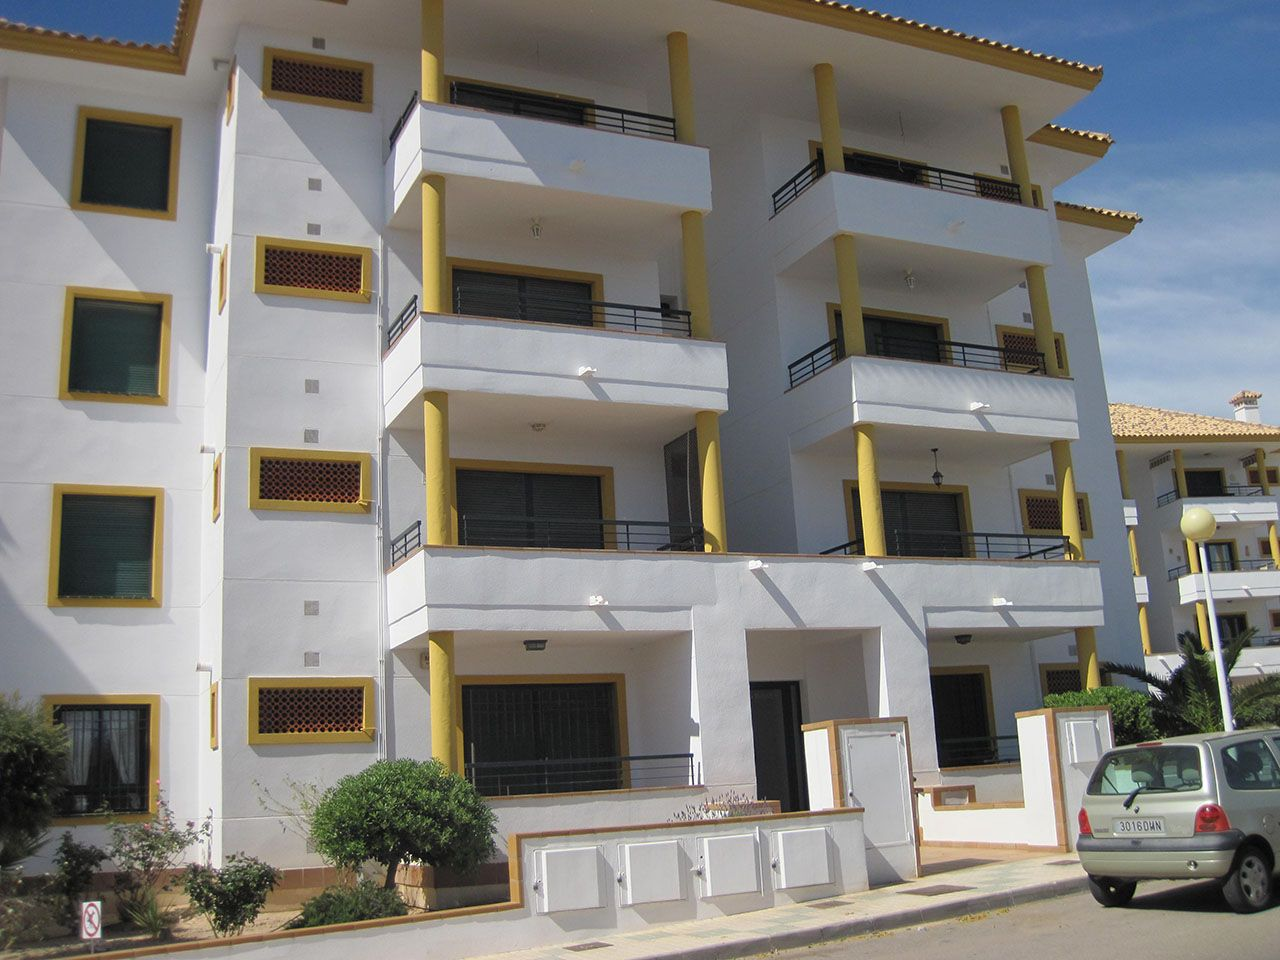 Ref:HA-OCN-210-A01 Single storey apartment For Sale in Orihuela Costa